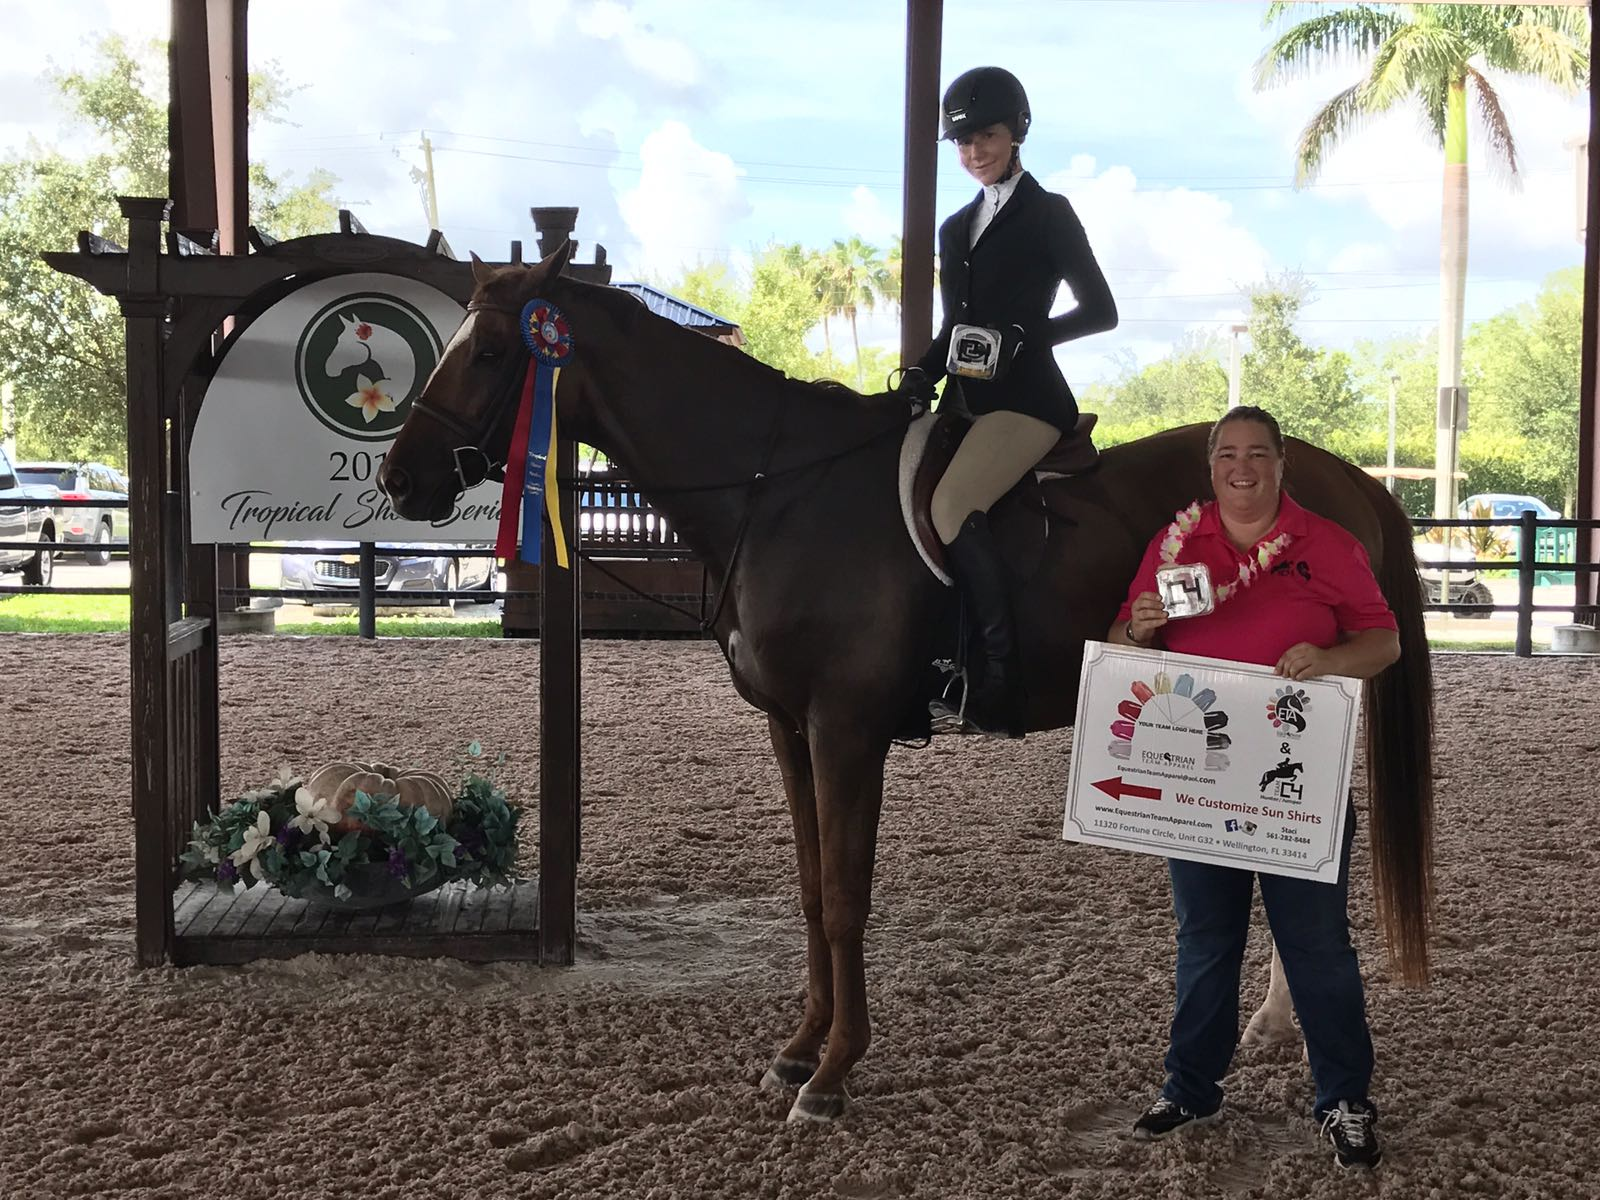 a9652d8abec Equestrian athletes Mila Sands and Gabriella Moran returned home to Nassau  this week in triumph after their success in the first leg of the Tropical  Show ...